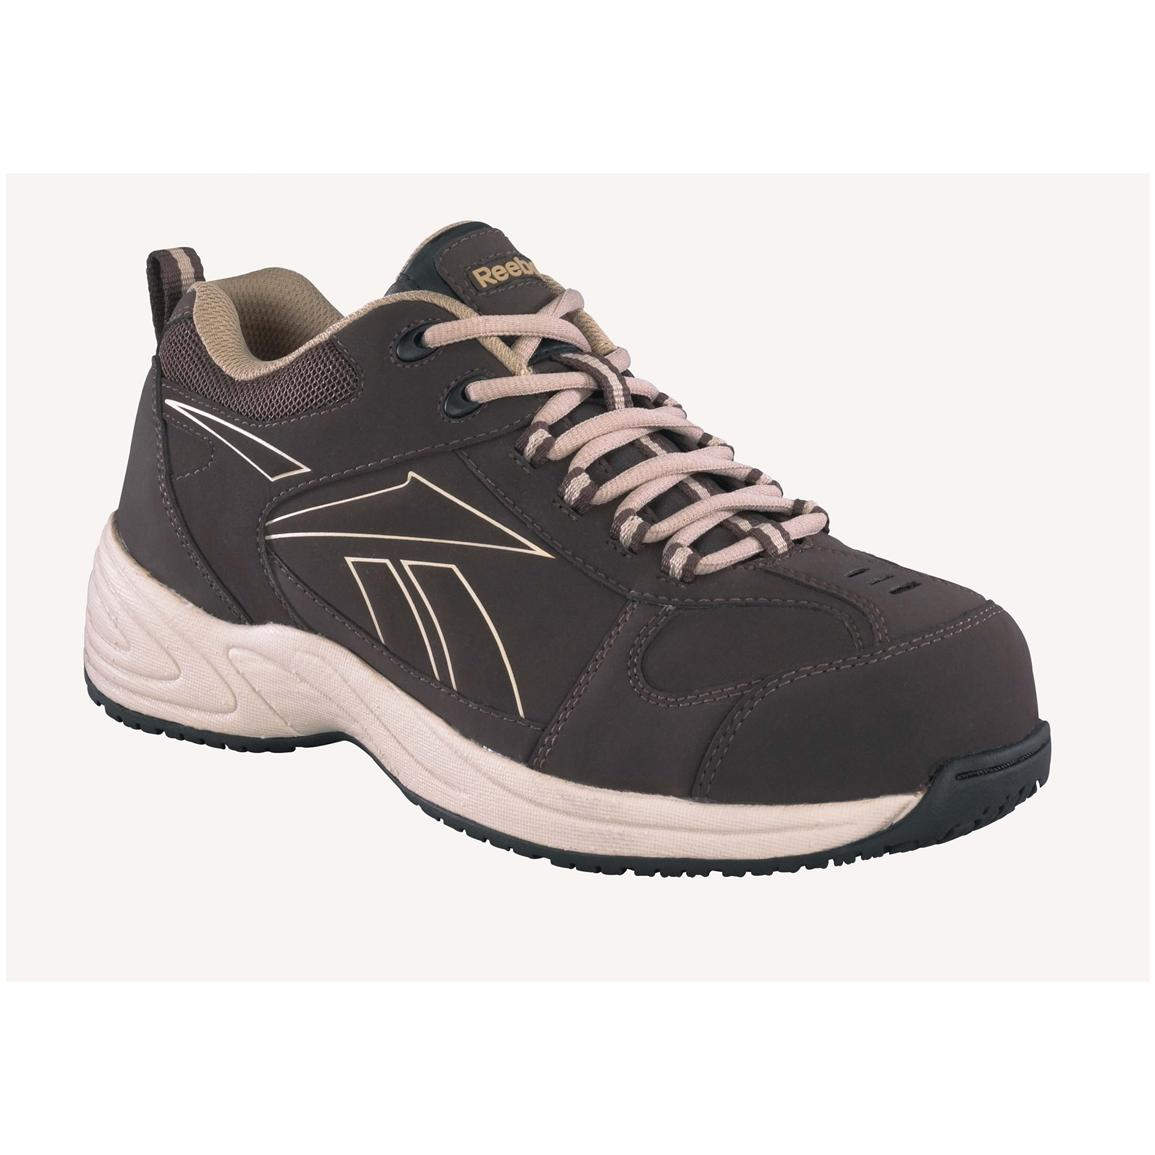 Men's Reebok® Composite Toe Street Sport Shoes, Brown / Taupe